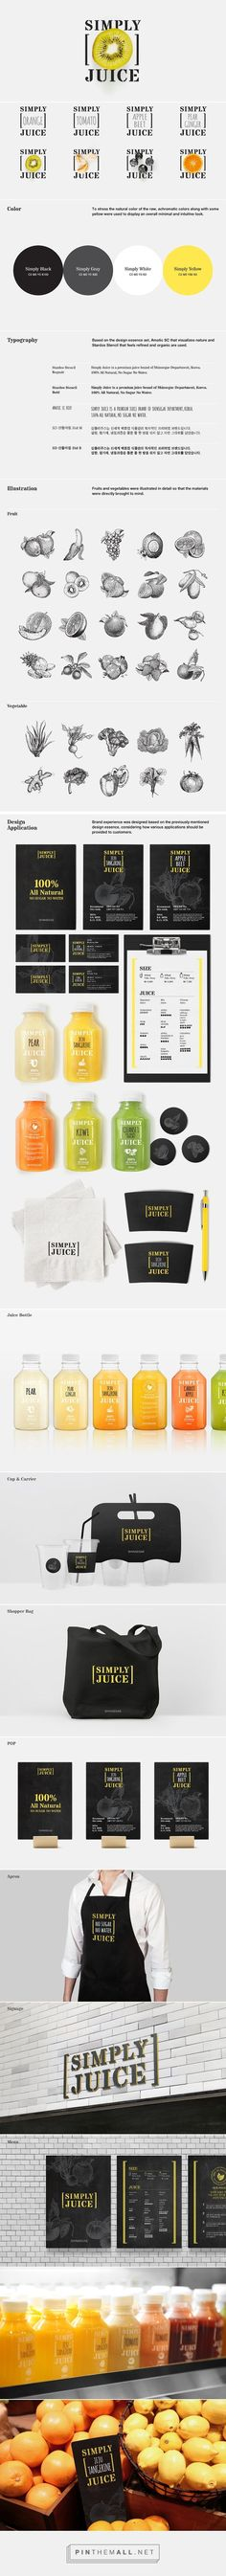 SHINSEGAE Simply Juice branding packaging eXperience Design on Branding Served curated by Packaging Diva PD. Love this idea: